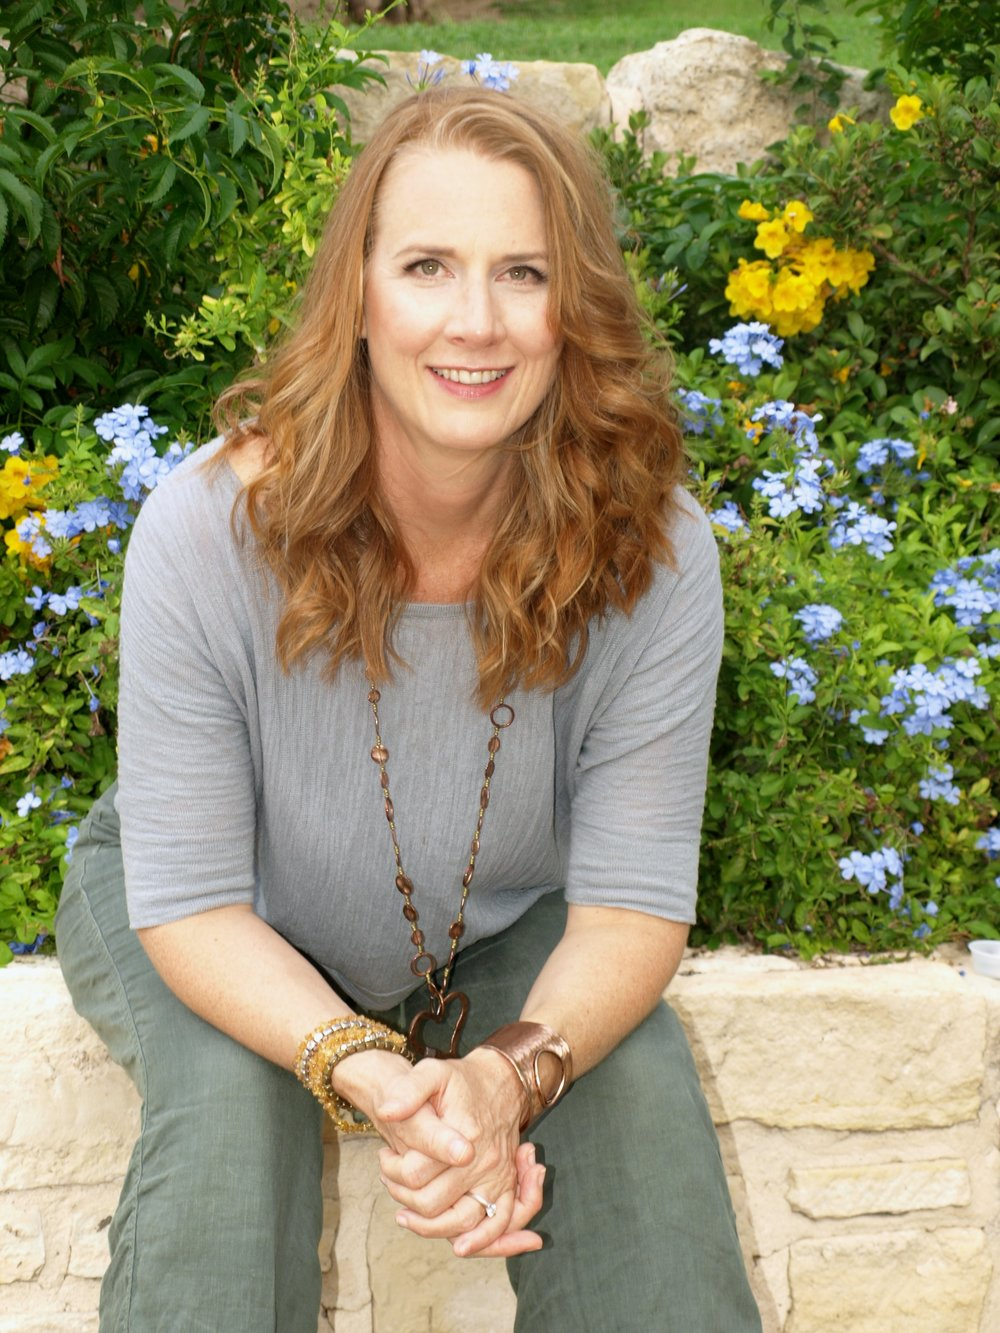 Hello! I am Laura Wall - I am an intuitive coach who addresses the whole person: mind, body, heart and soul. Through my holistic coaching, workshop presentations and artwork, my intention is to inspire and empower others to reclaim their health and wholeness, and find what sets their hearts free!